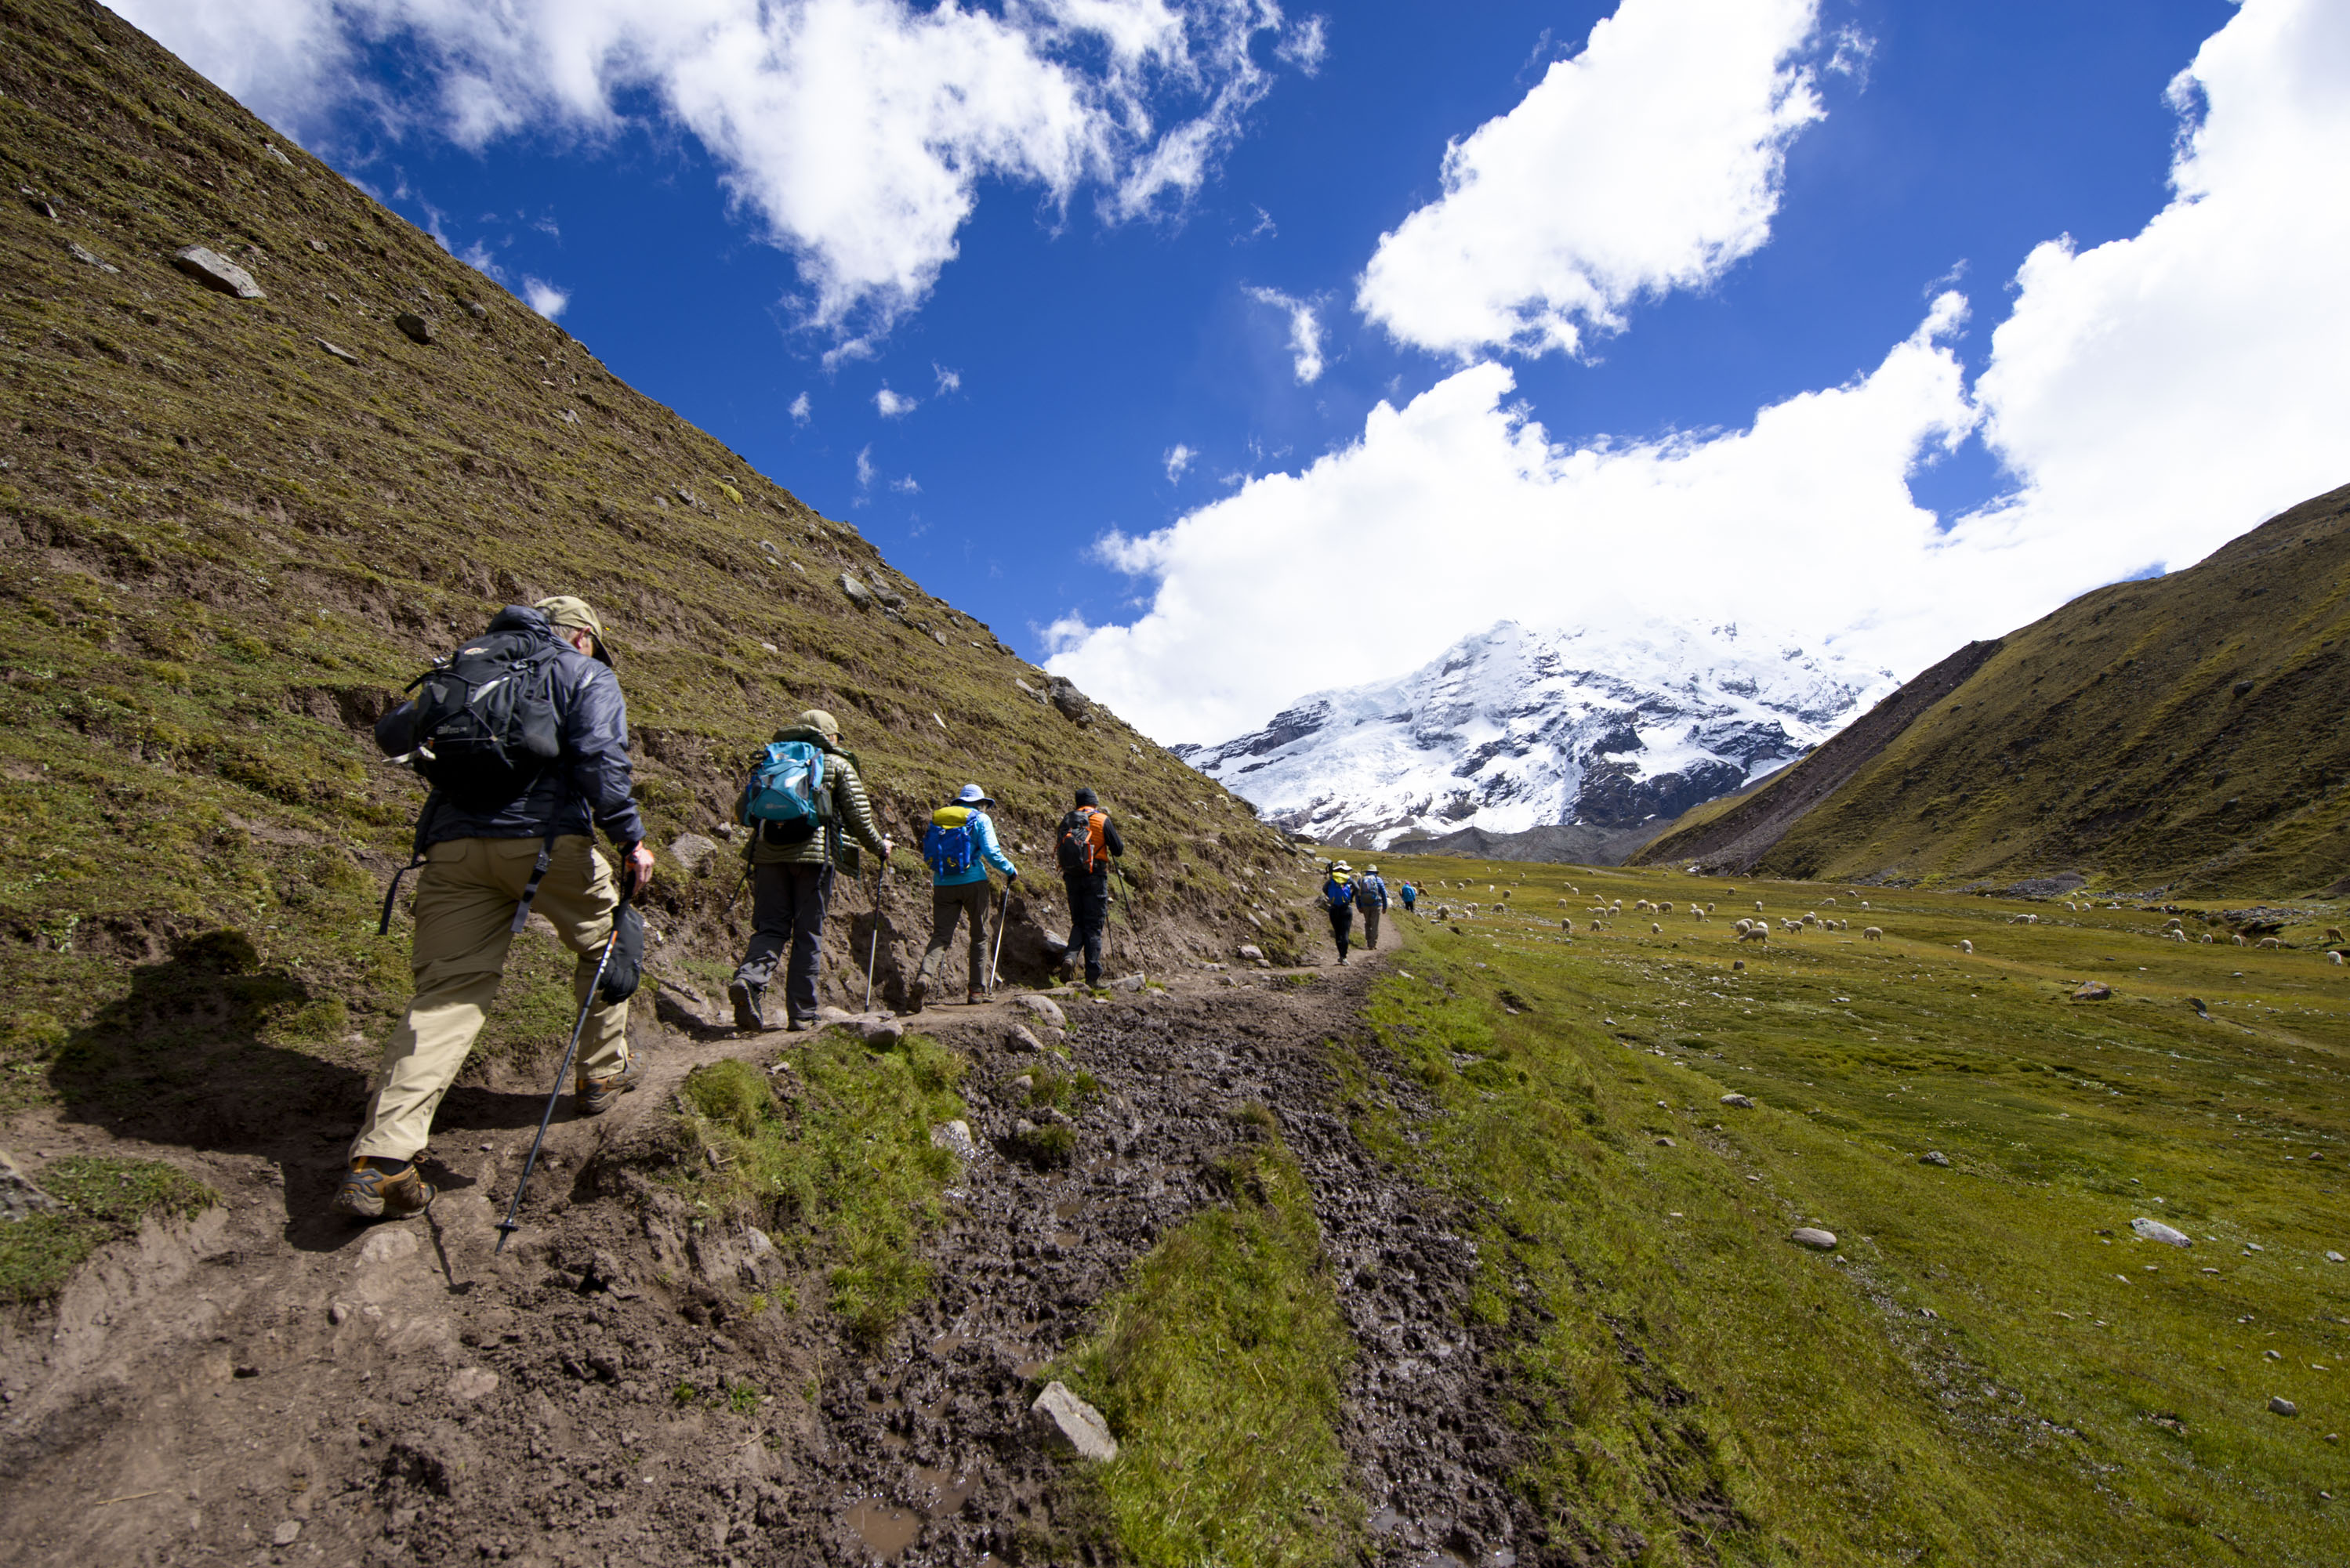 Trekking with Andean Lodges: a step-by-step guide to the best trekking adventures in the Andes